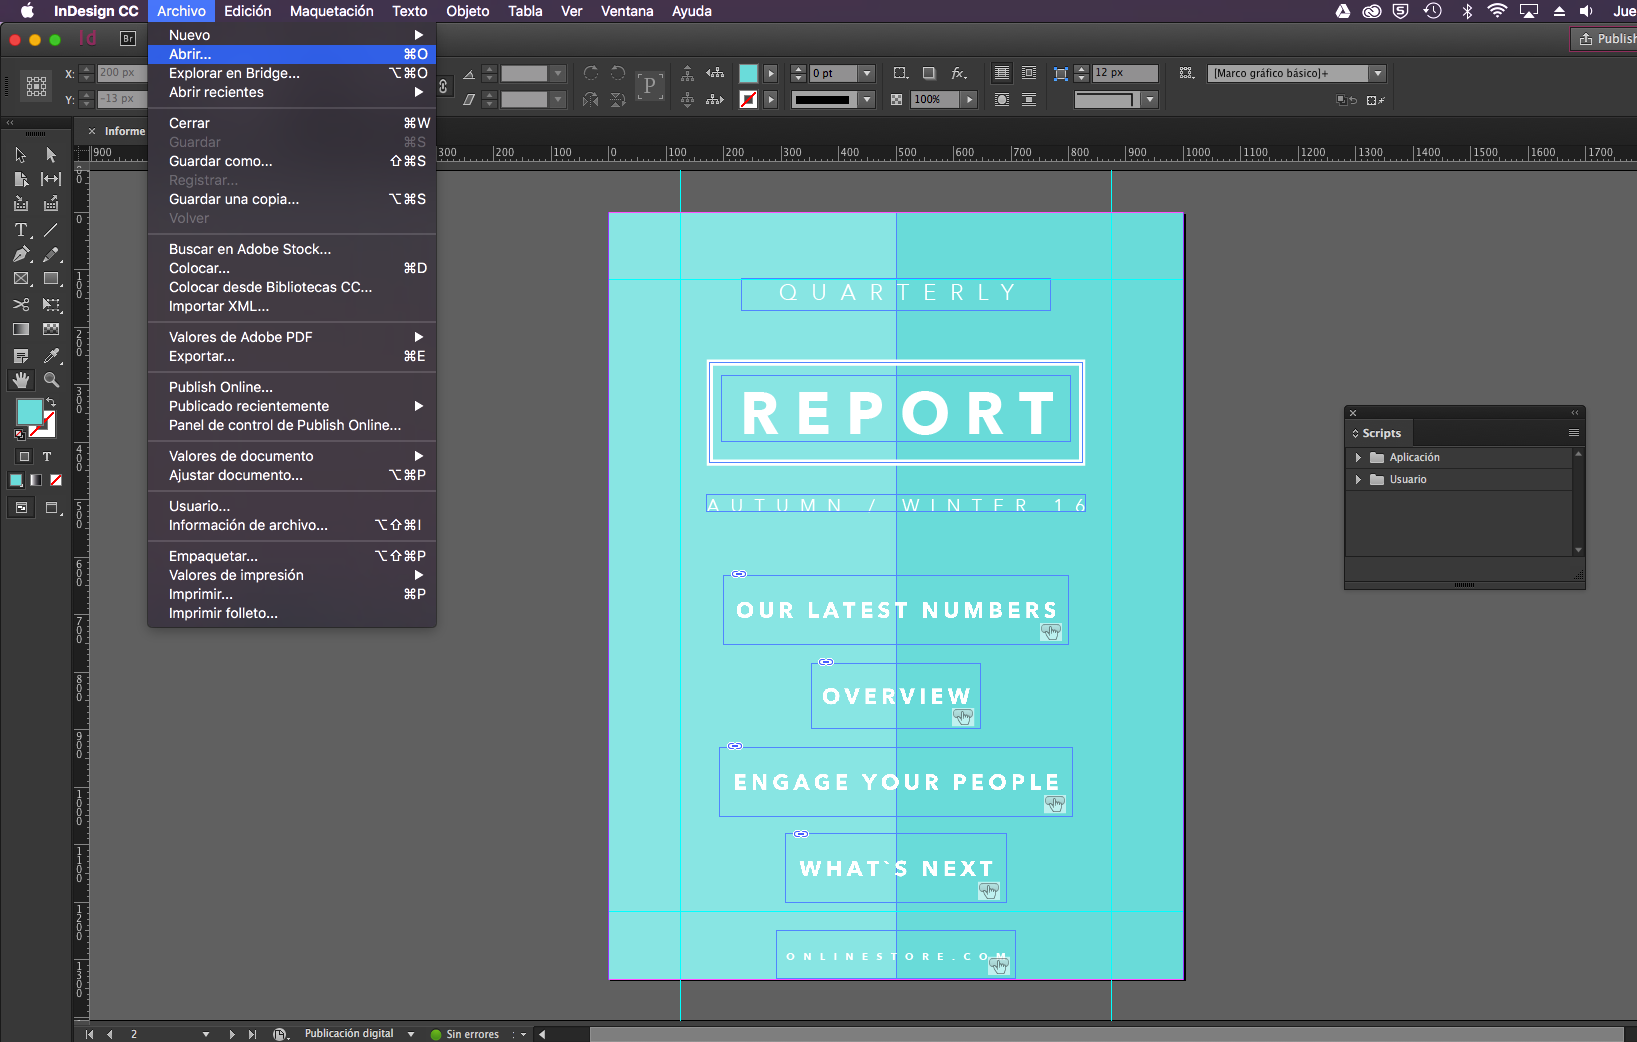 480interactive Wizard: Create a Kiosk App with InDesign | 480interactive